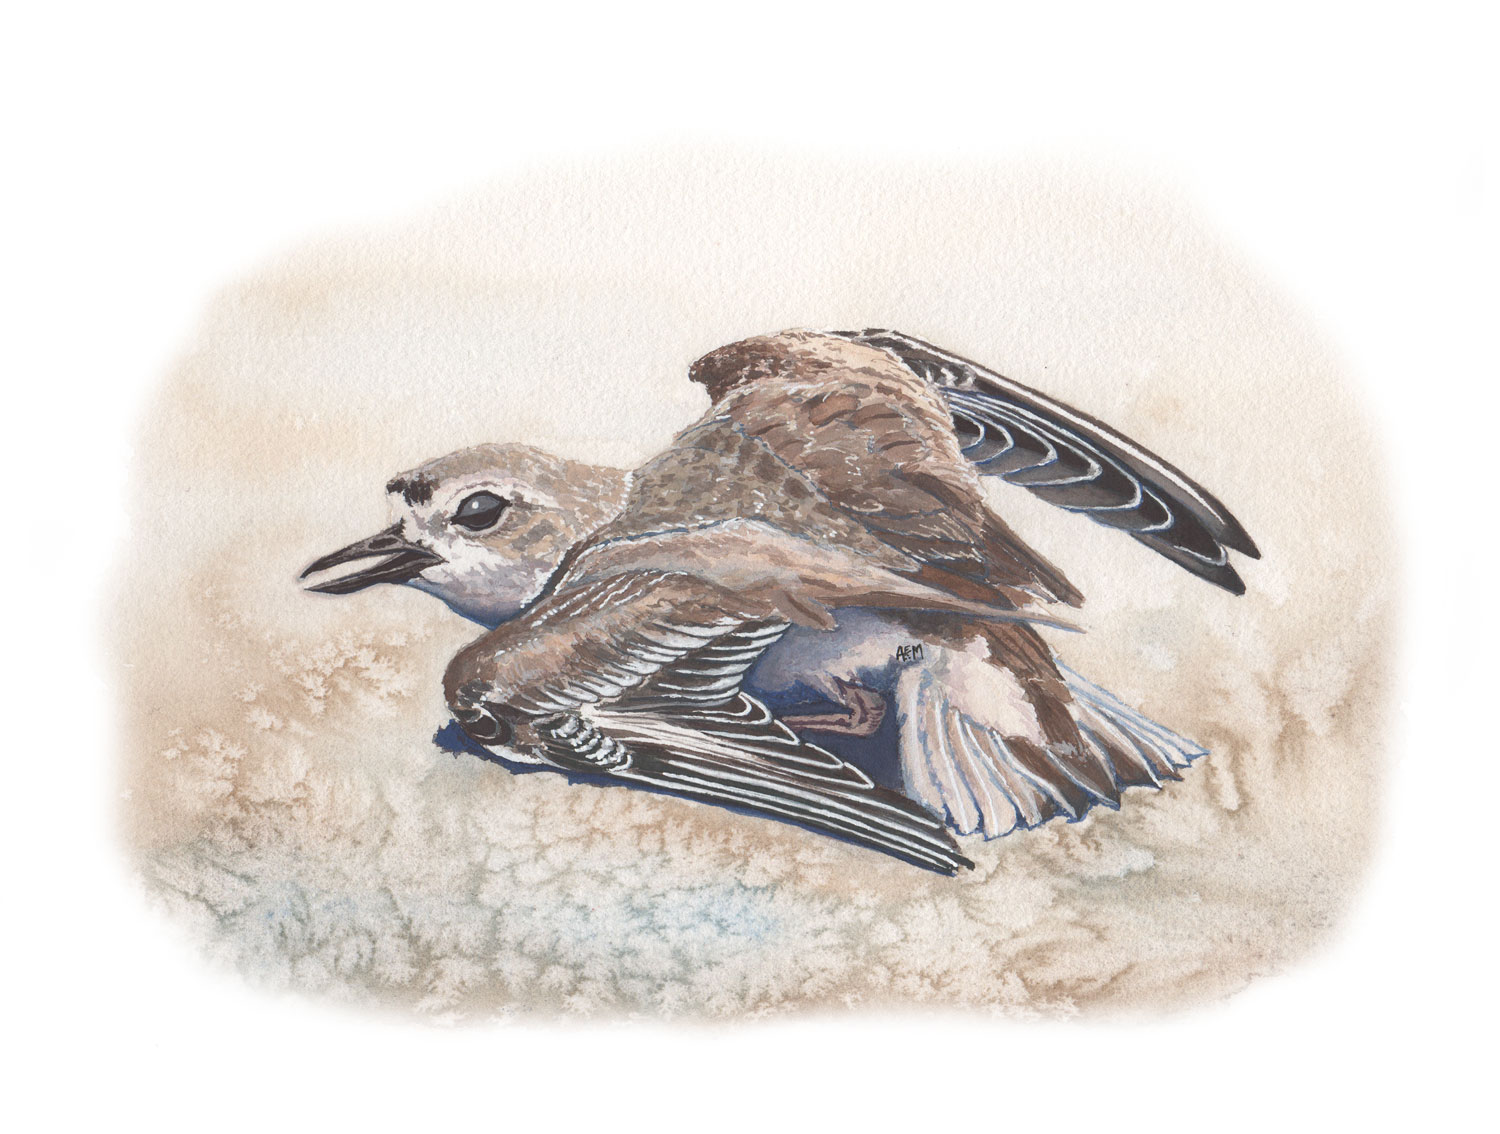 Western Snowy Plover broken wing display